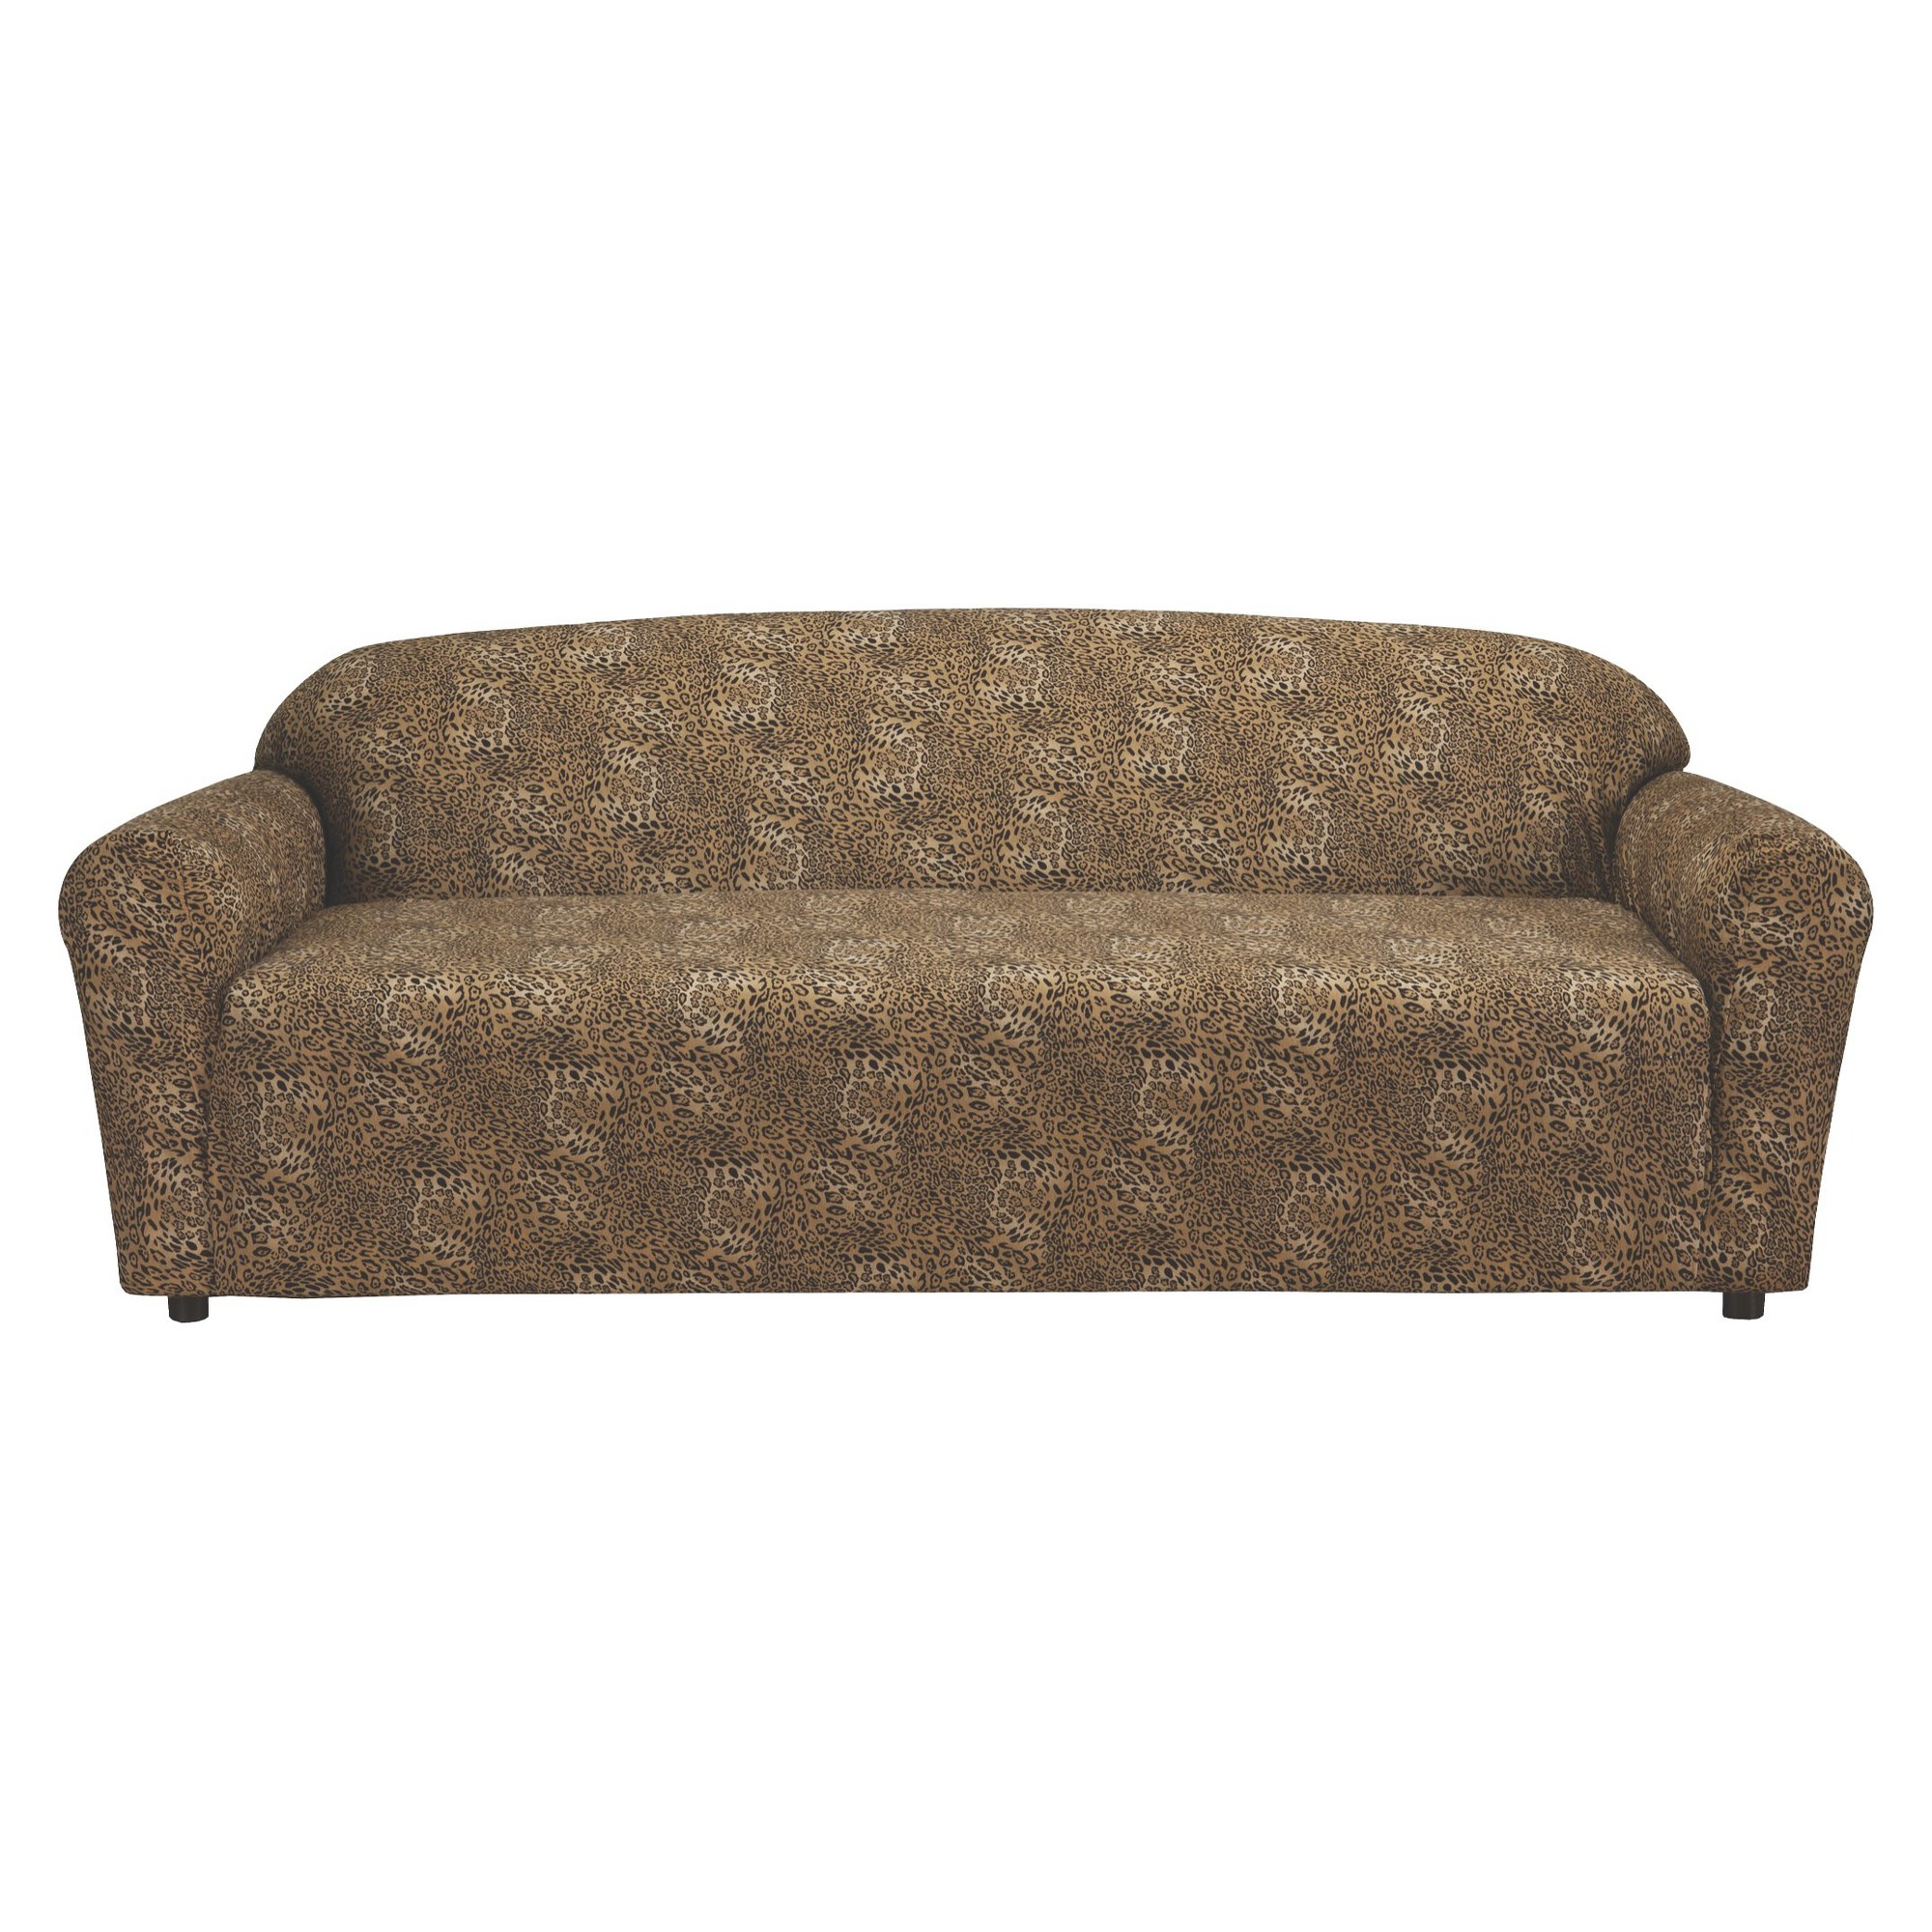 Jersey Sofa Slipcover, slipcovers and furniture covers